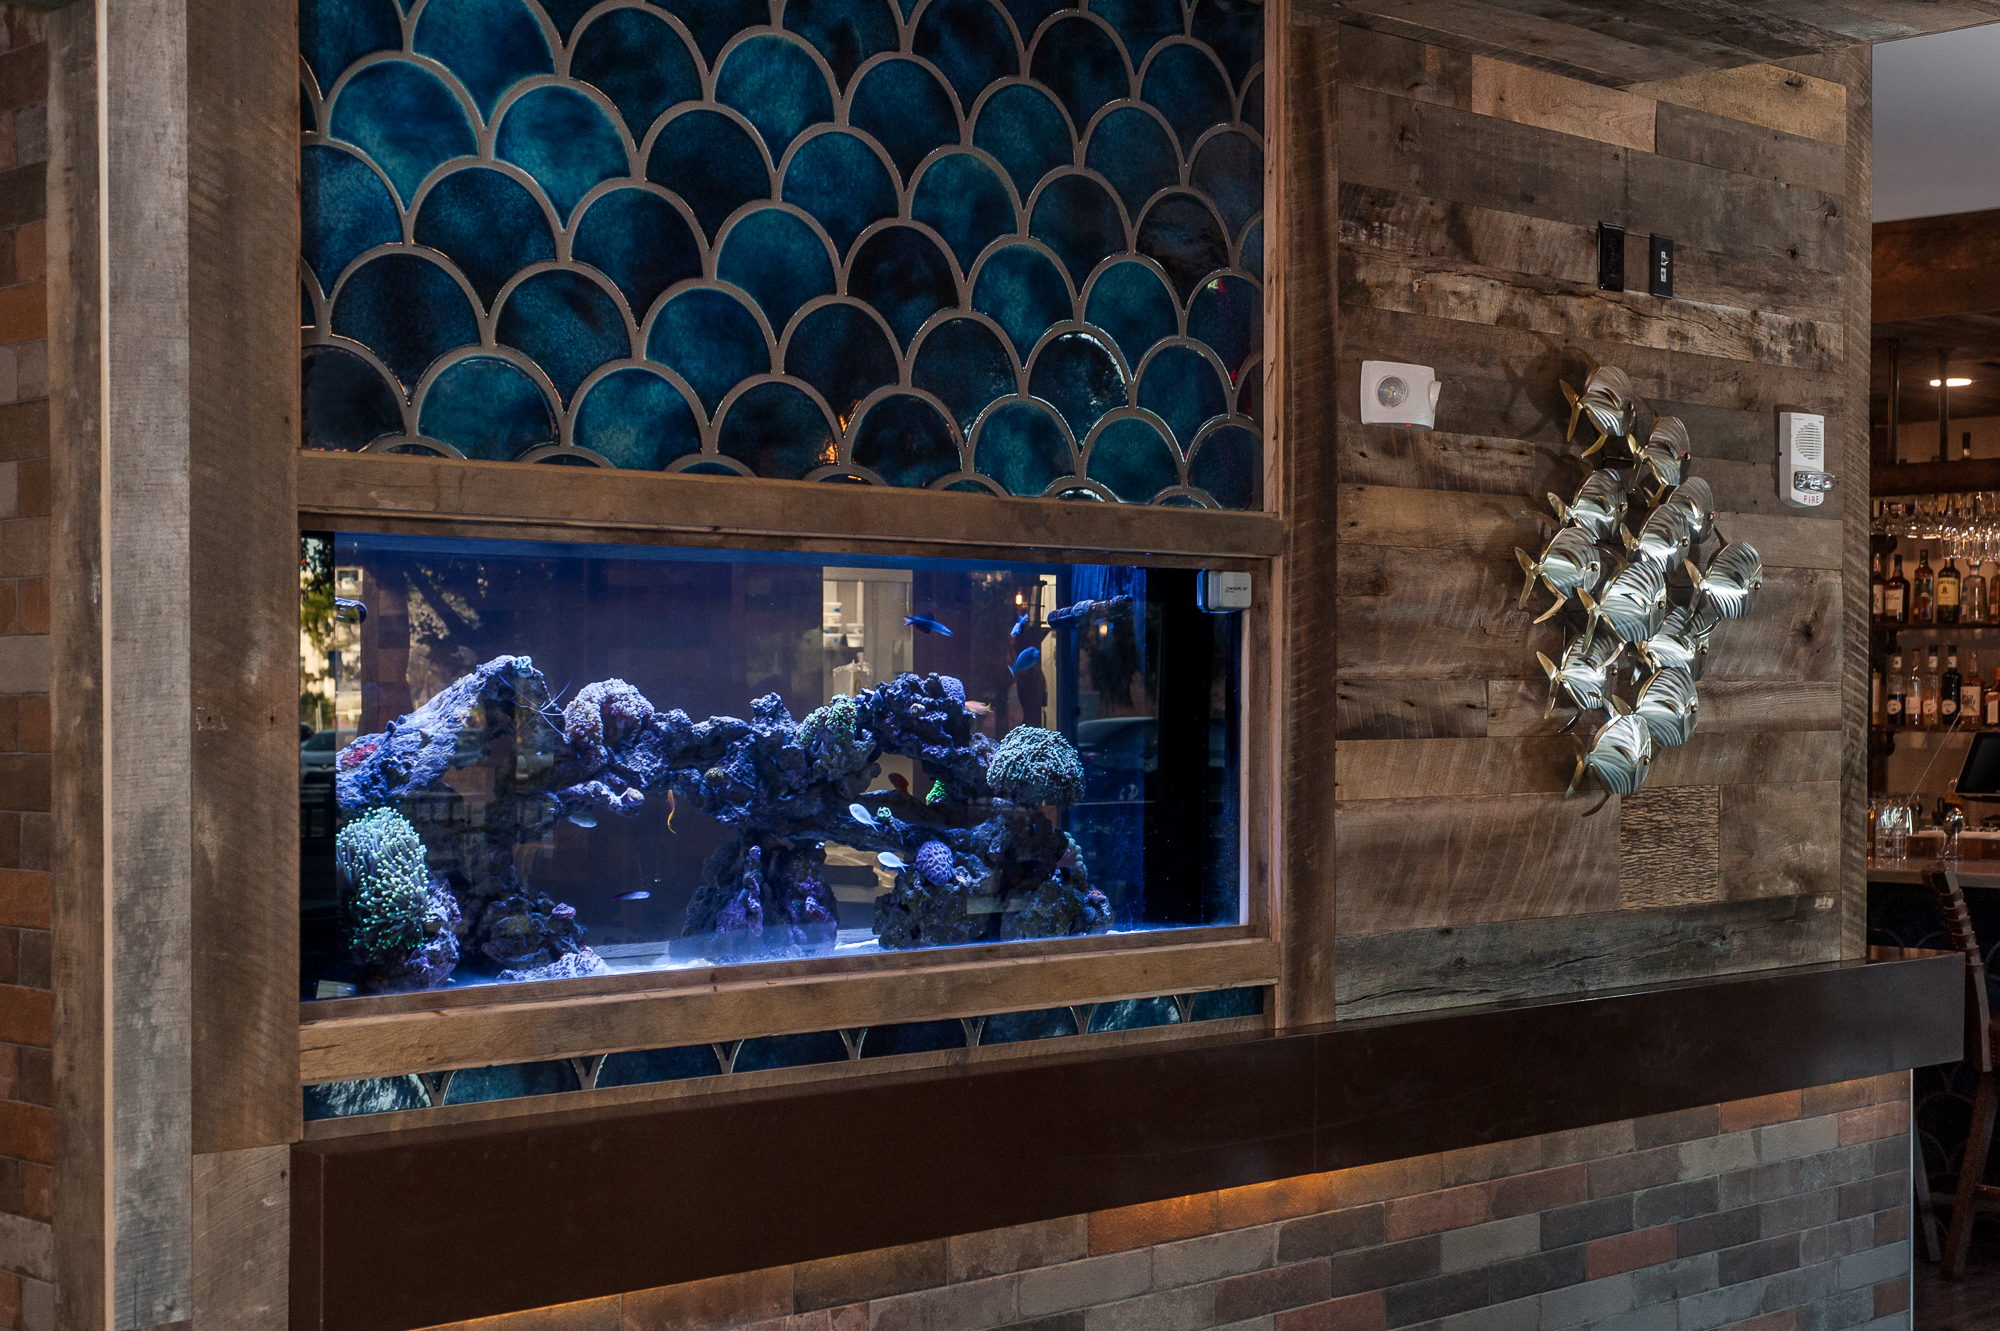 Micamy Design Studio_Interior Design_River and Post_Restaurant_Rooftop_Bar_Industrial_Rustic_Coastal_Riverside_Reclaimed Wood_Blog Style_Styling Accessories_Mermaid Tile_Cocktails.jpg